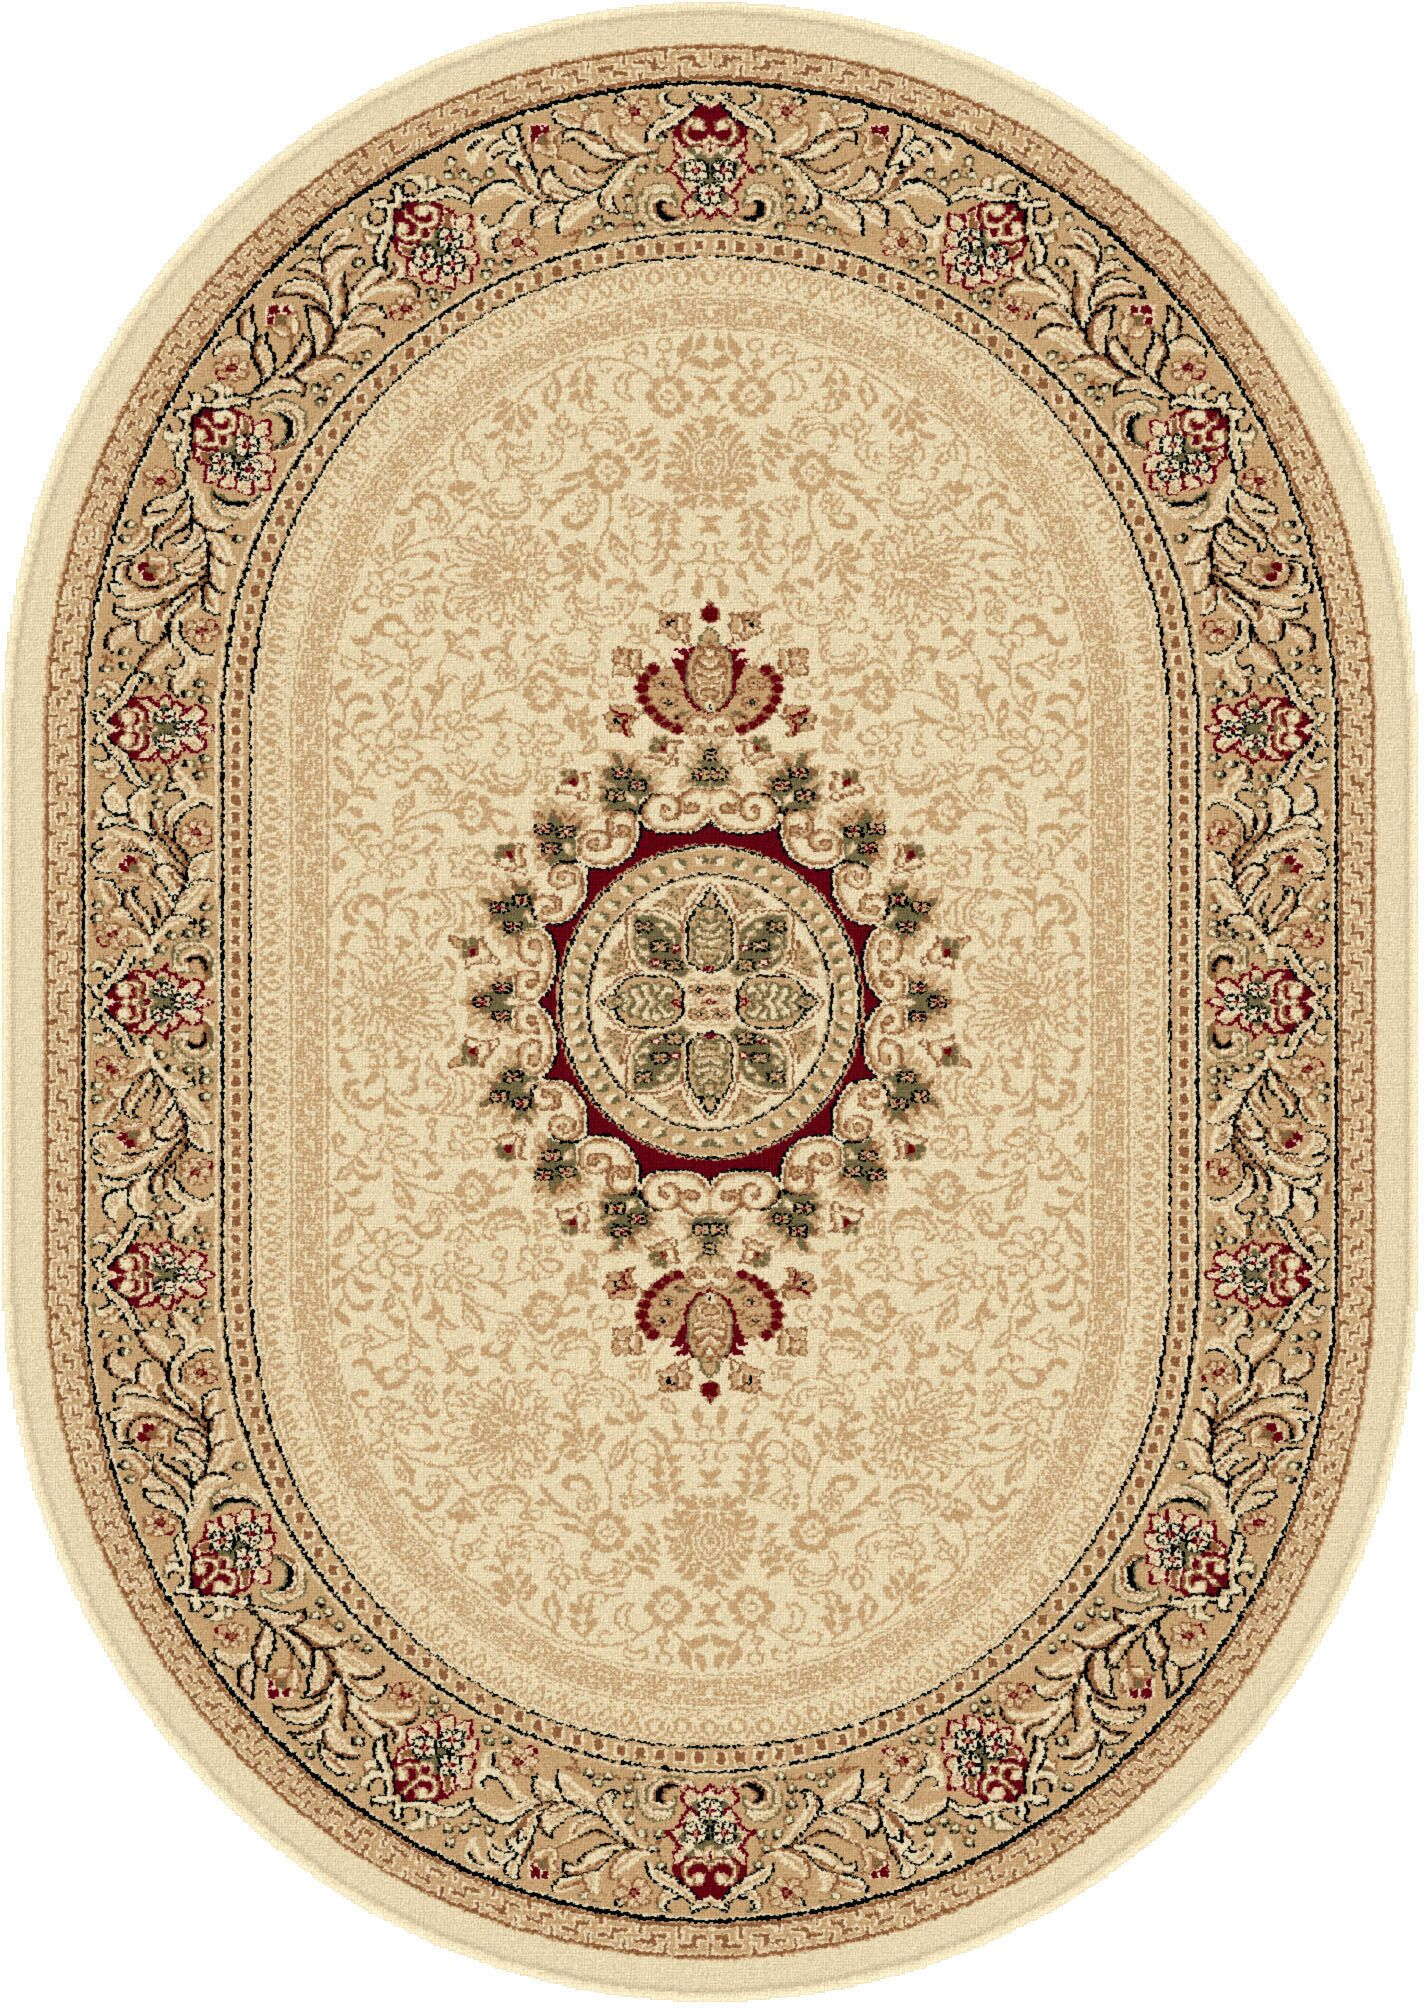 Clarence Beige/Tan Area Rug Rug Size: 5'3'' x 7'3'' Oval